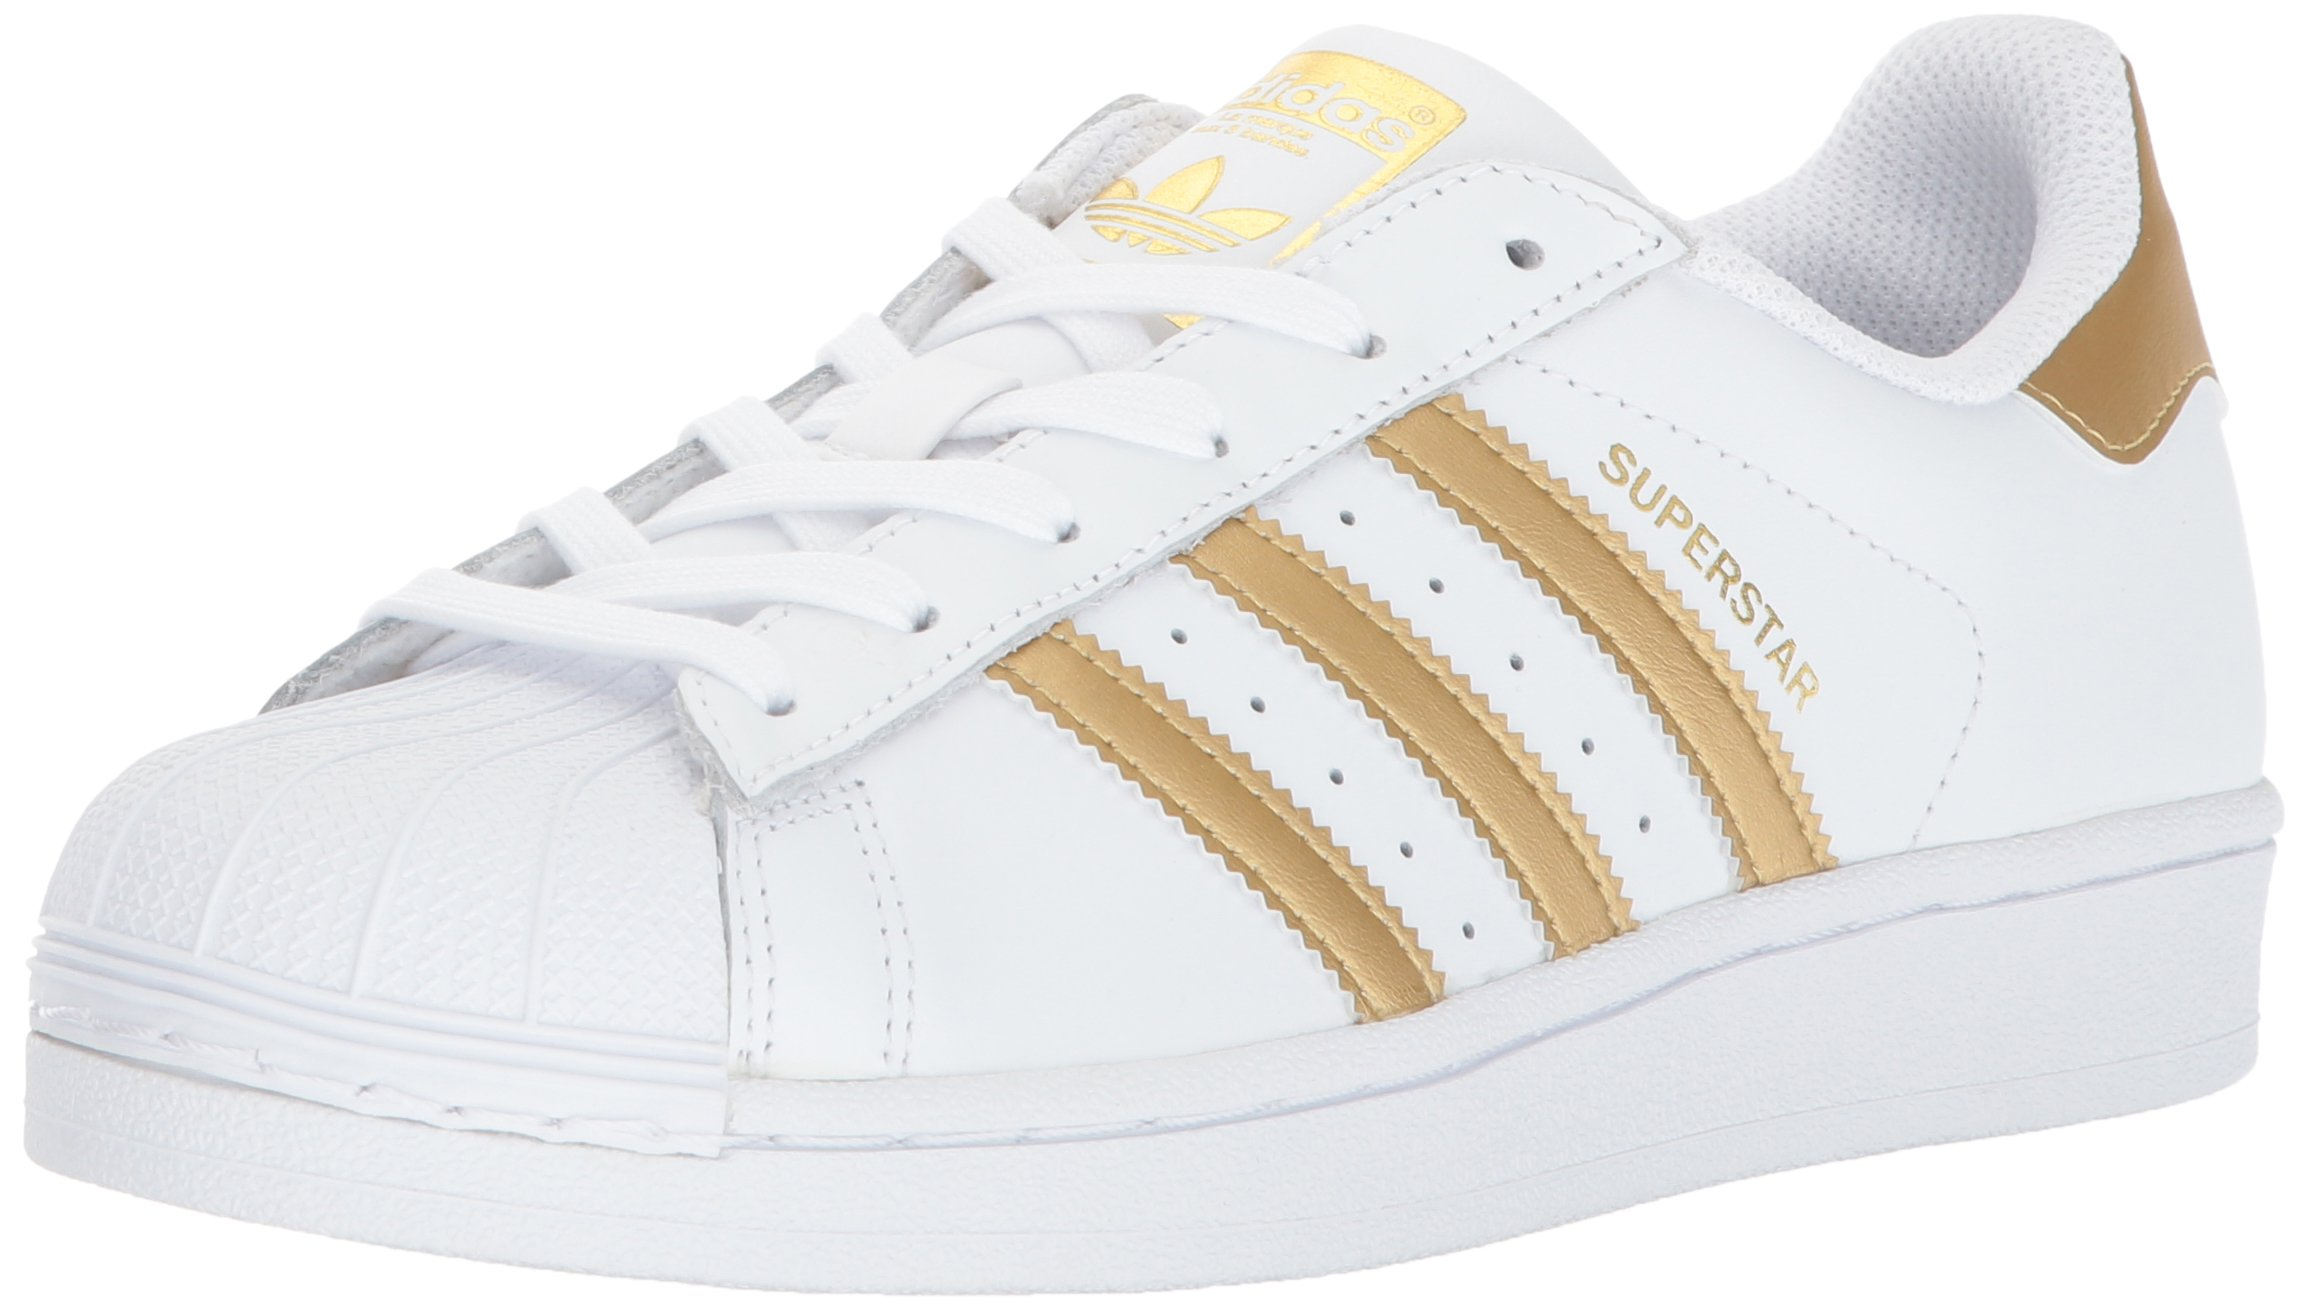 adidas Originals Unisex-Kids Superstar J Sneaker, White/Gold Metallic/Blue, 4 M US Big Kid by adidas